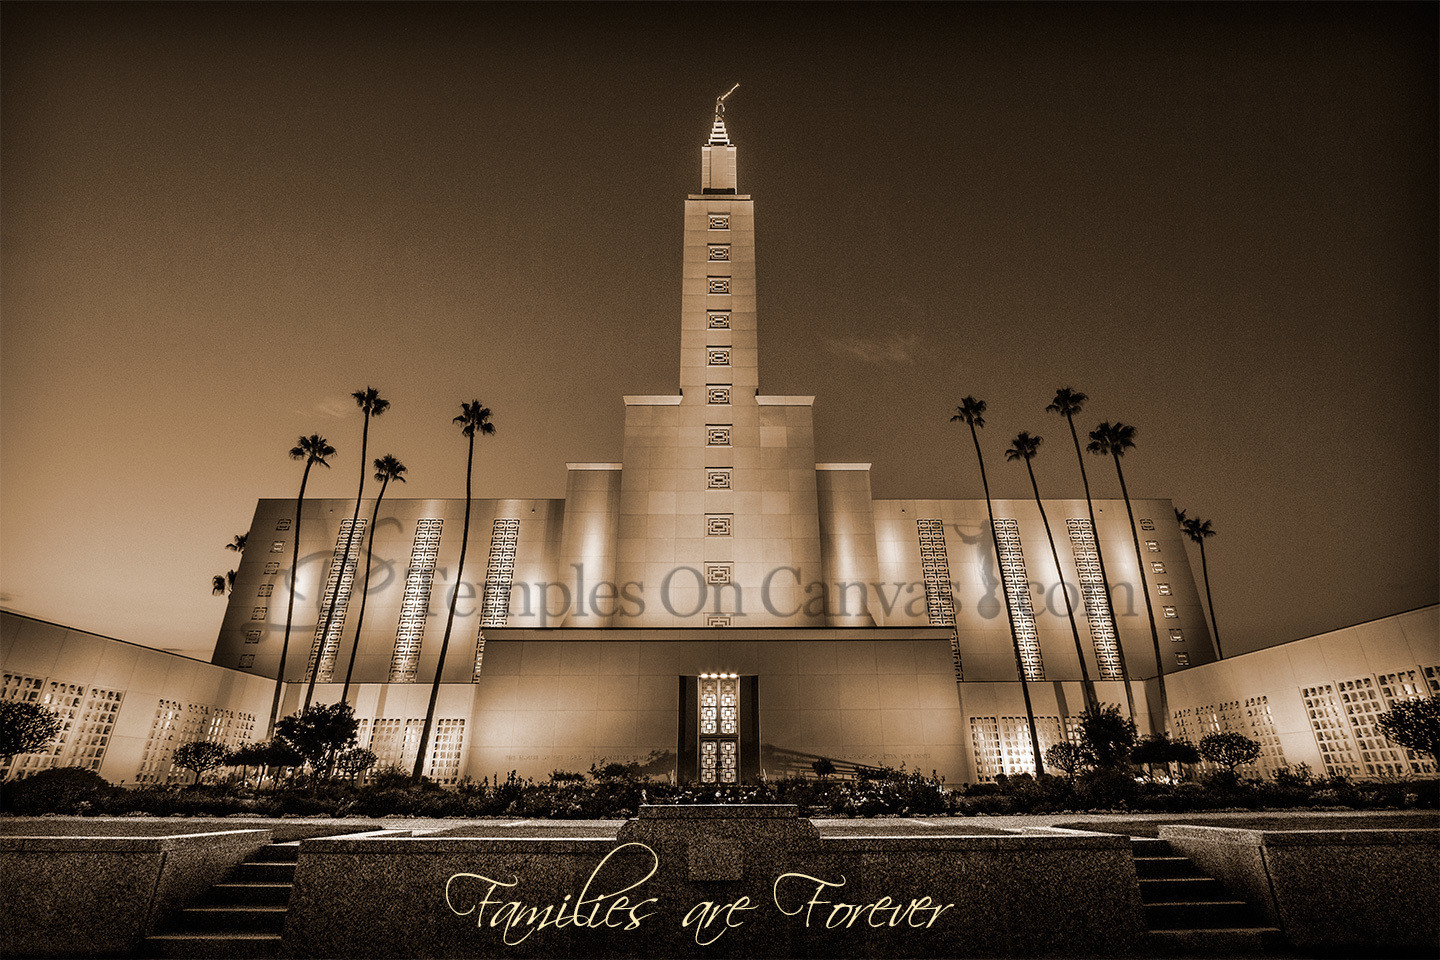 Los Angeles California LDS Temple - Eventide - Sepia